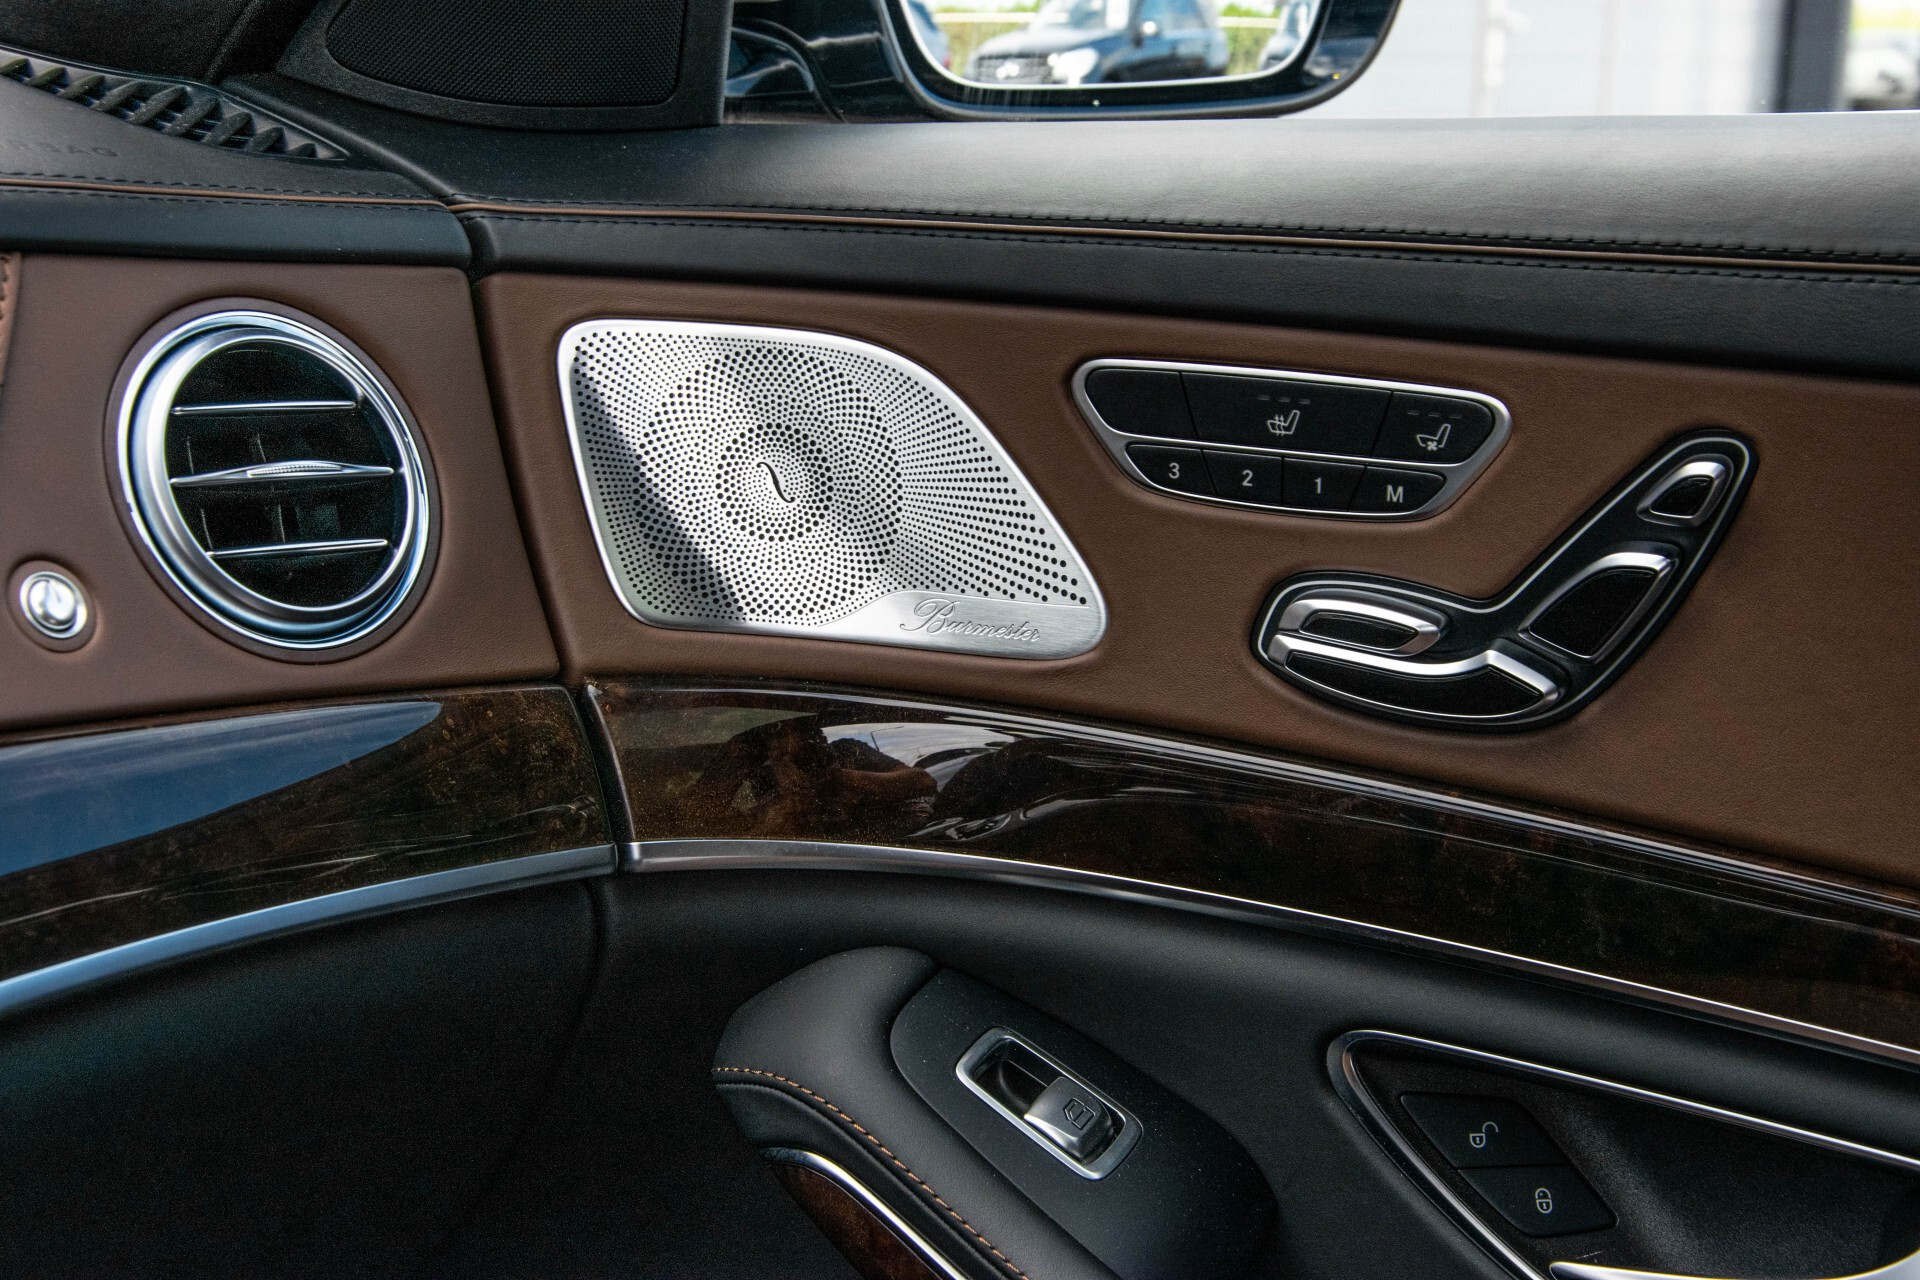 Mercedes-Benz S-Klasse 560 4-M Lang AMG Plus Exclusive Entertainment/Massage Aut9 Foto 52